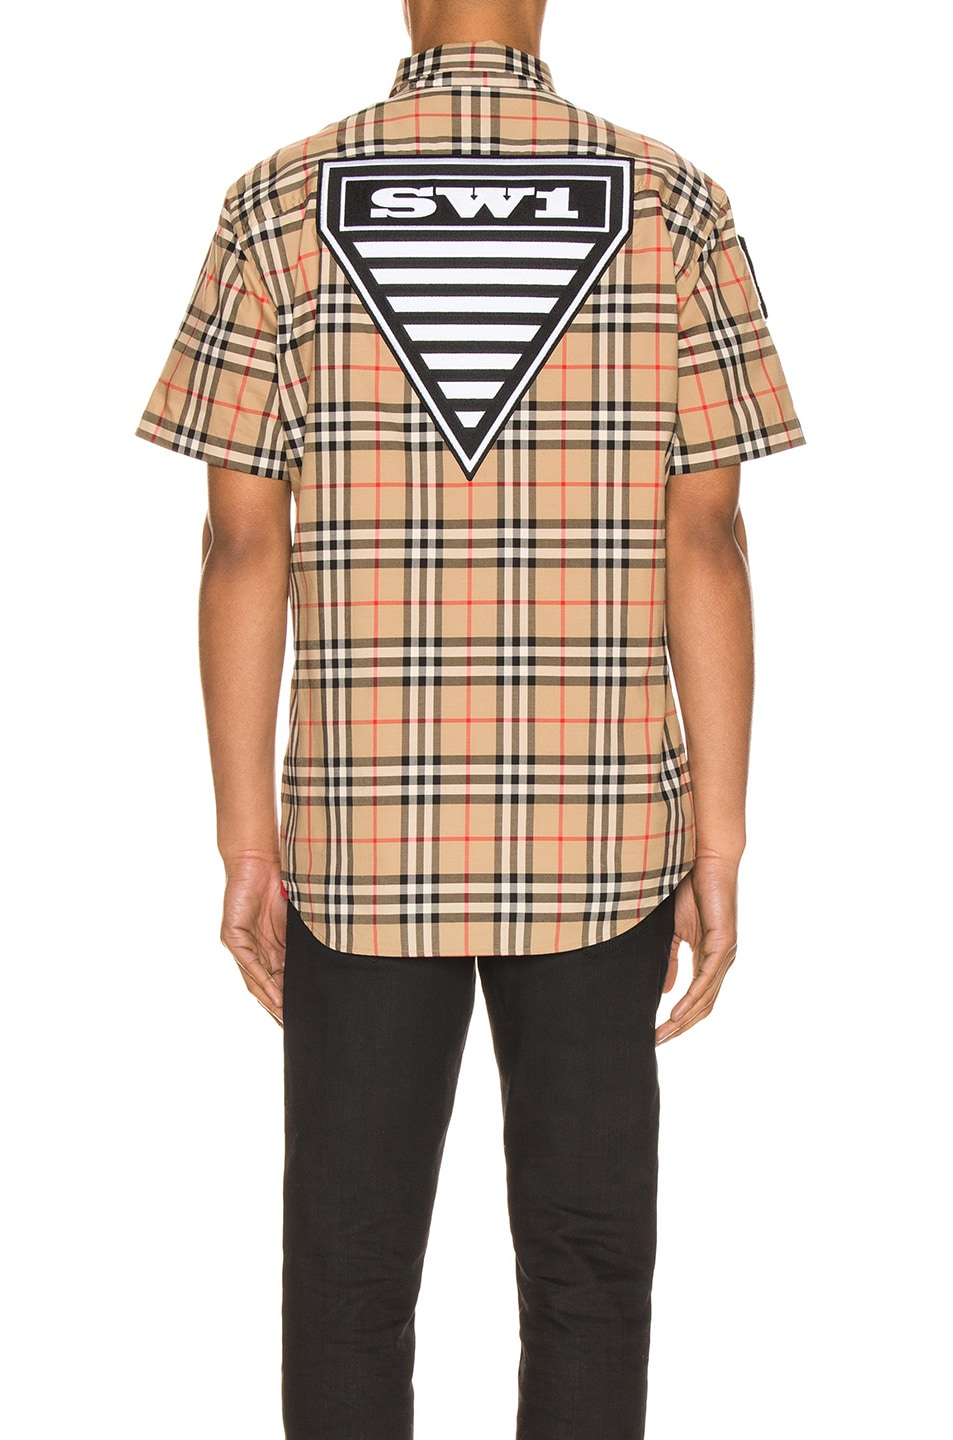 Image 4 of Burberry Combe Short Sleeve Shirt in Archive Beige IP Check